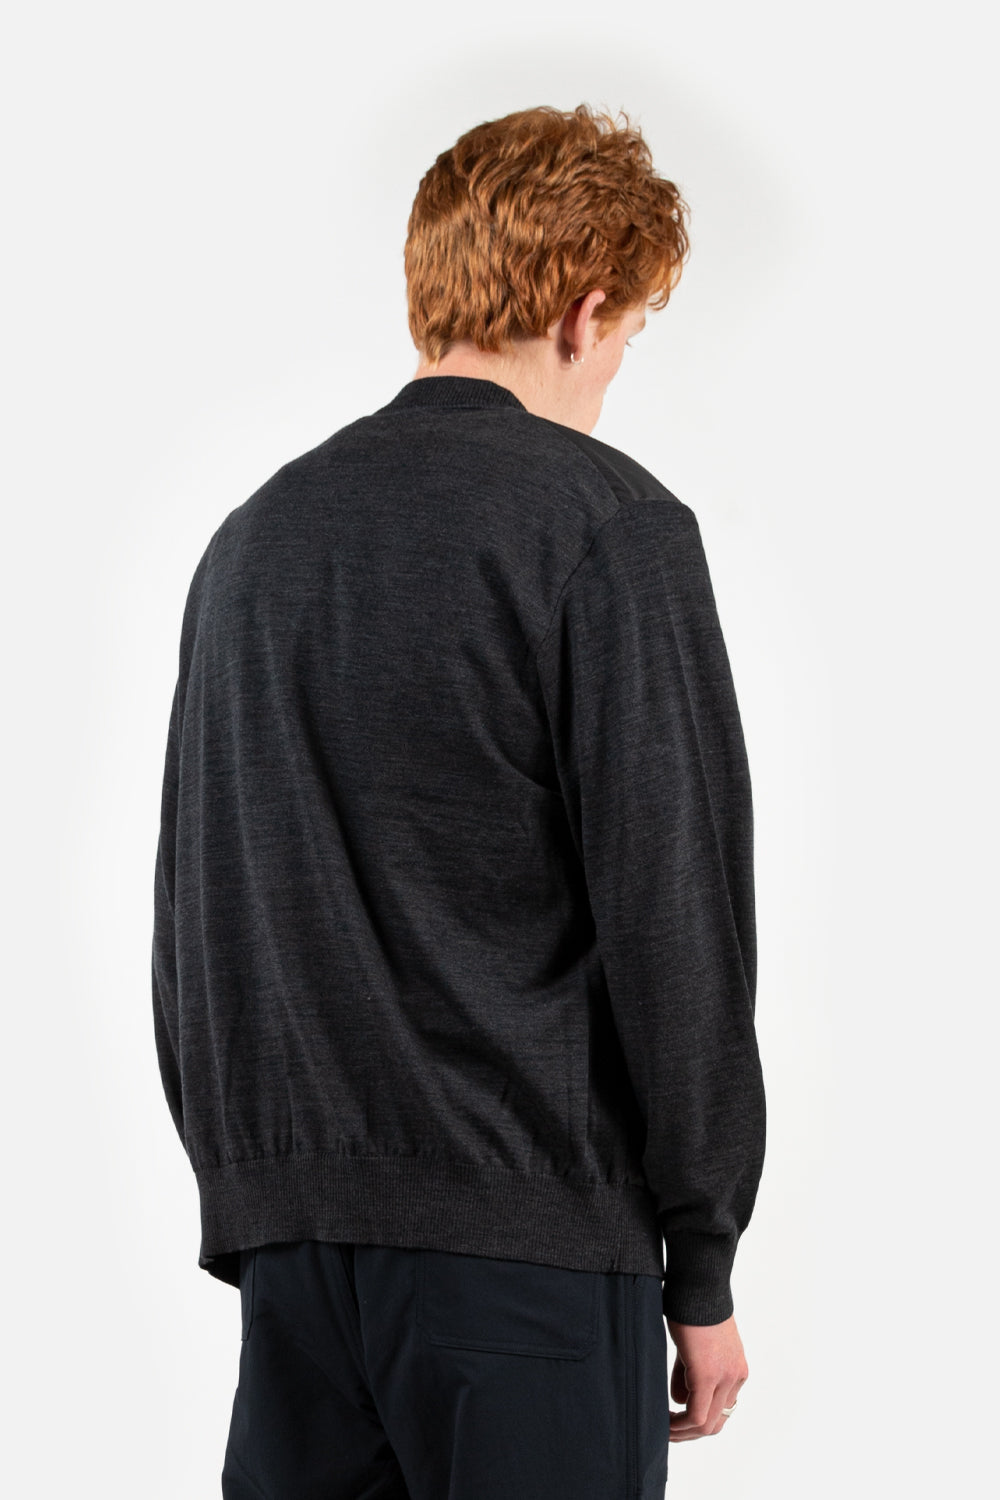 nanamica hybrid cardigan in charcoal